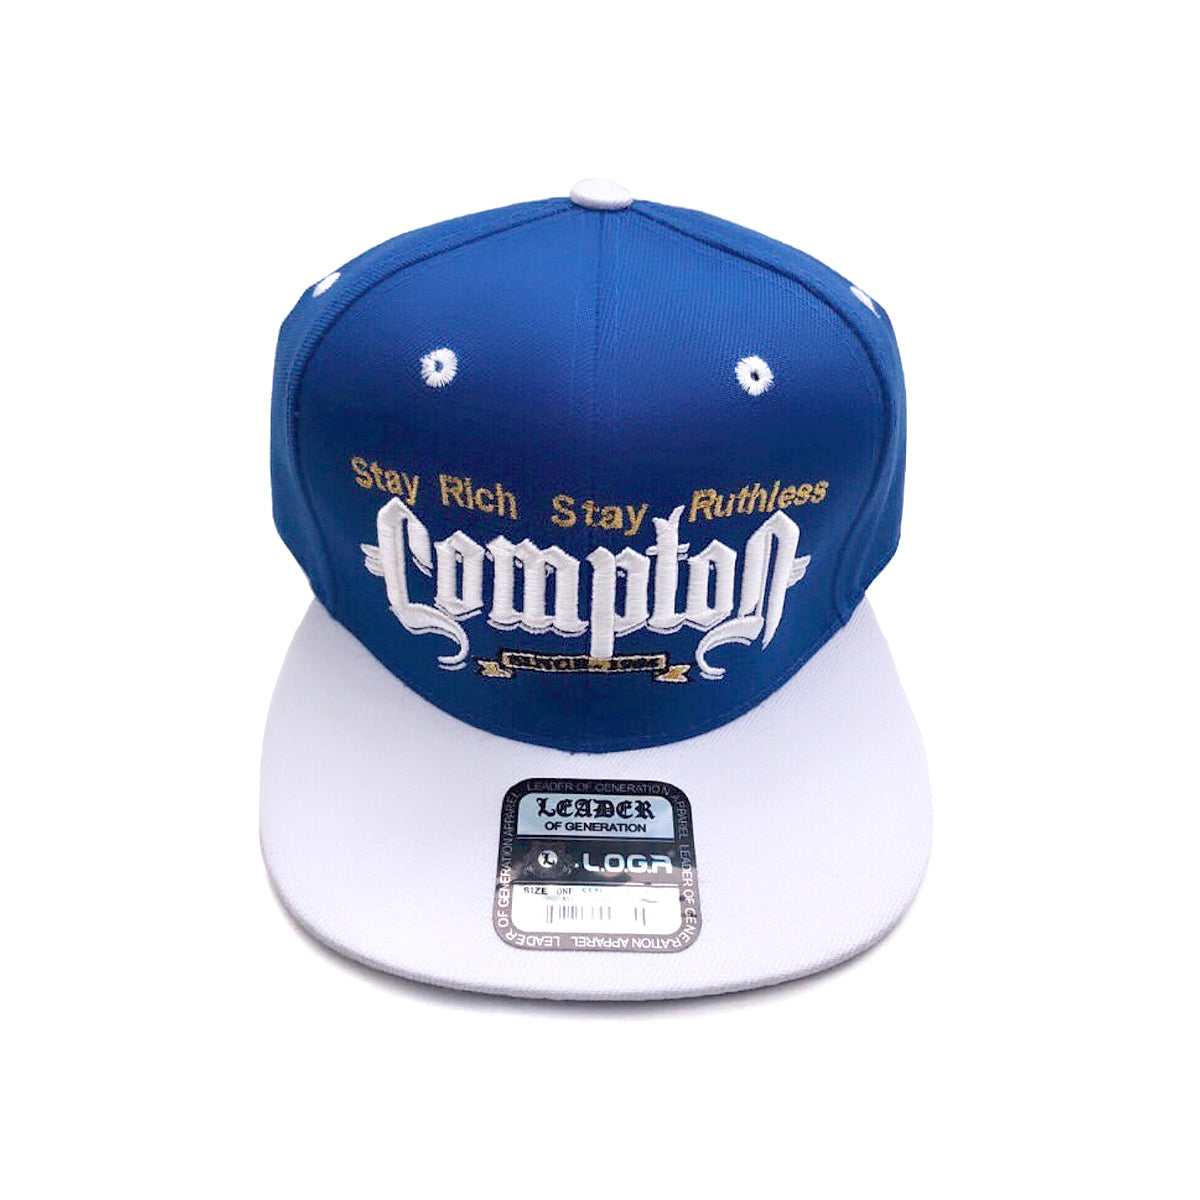 Rich & Ruthless Compton Hat (Blue/White)